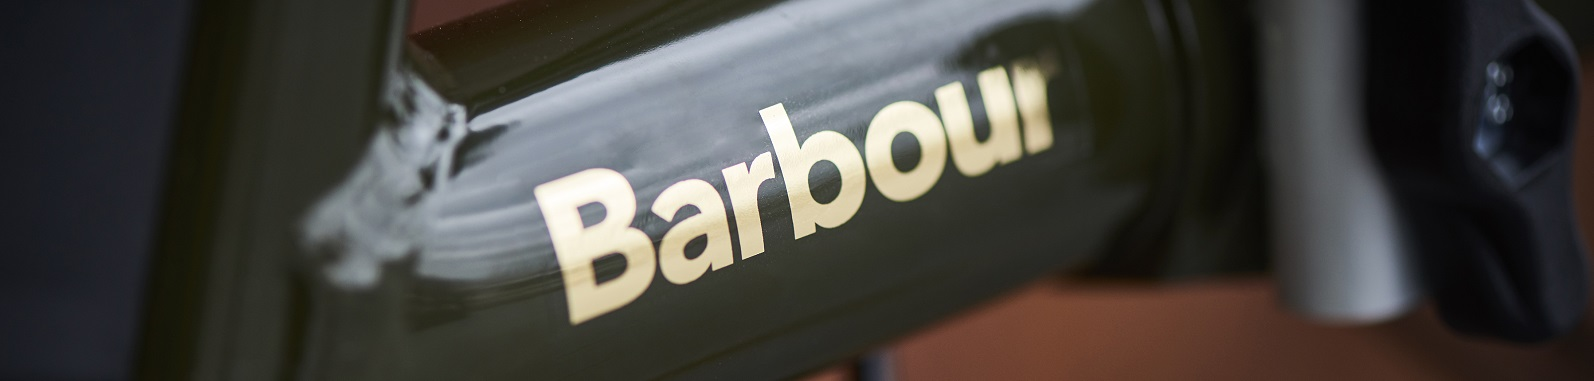 Barbour logo on bike frame